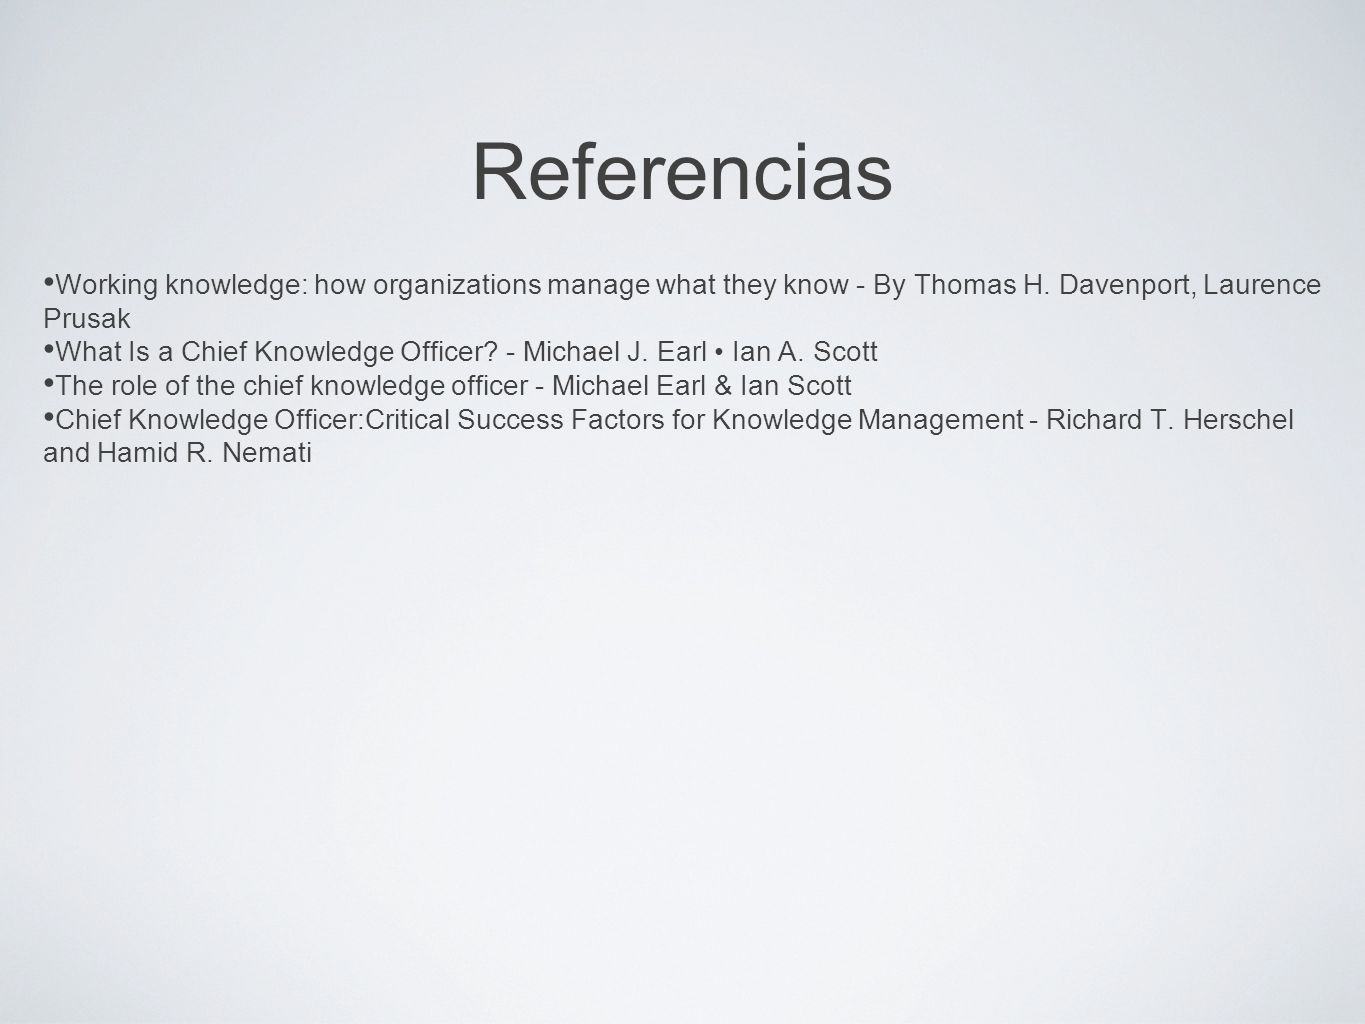 Referencias Working knowledge: how organizations manage what they know - By Thomas H. Davenport, Laurence Prusak.